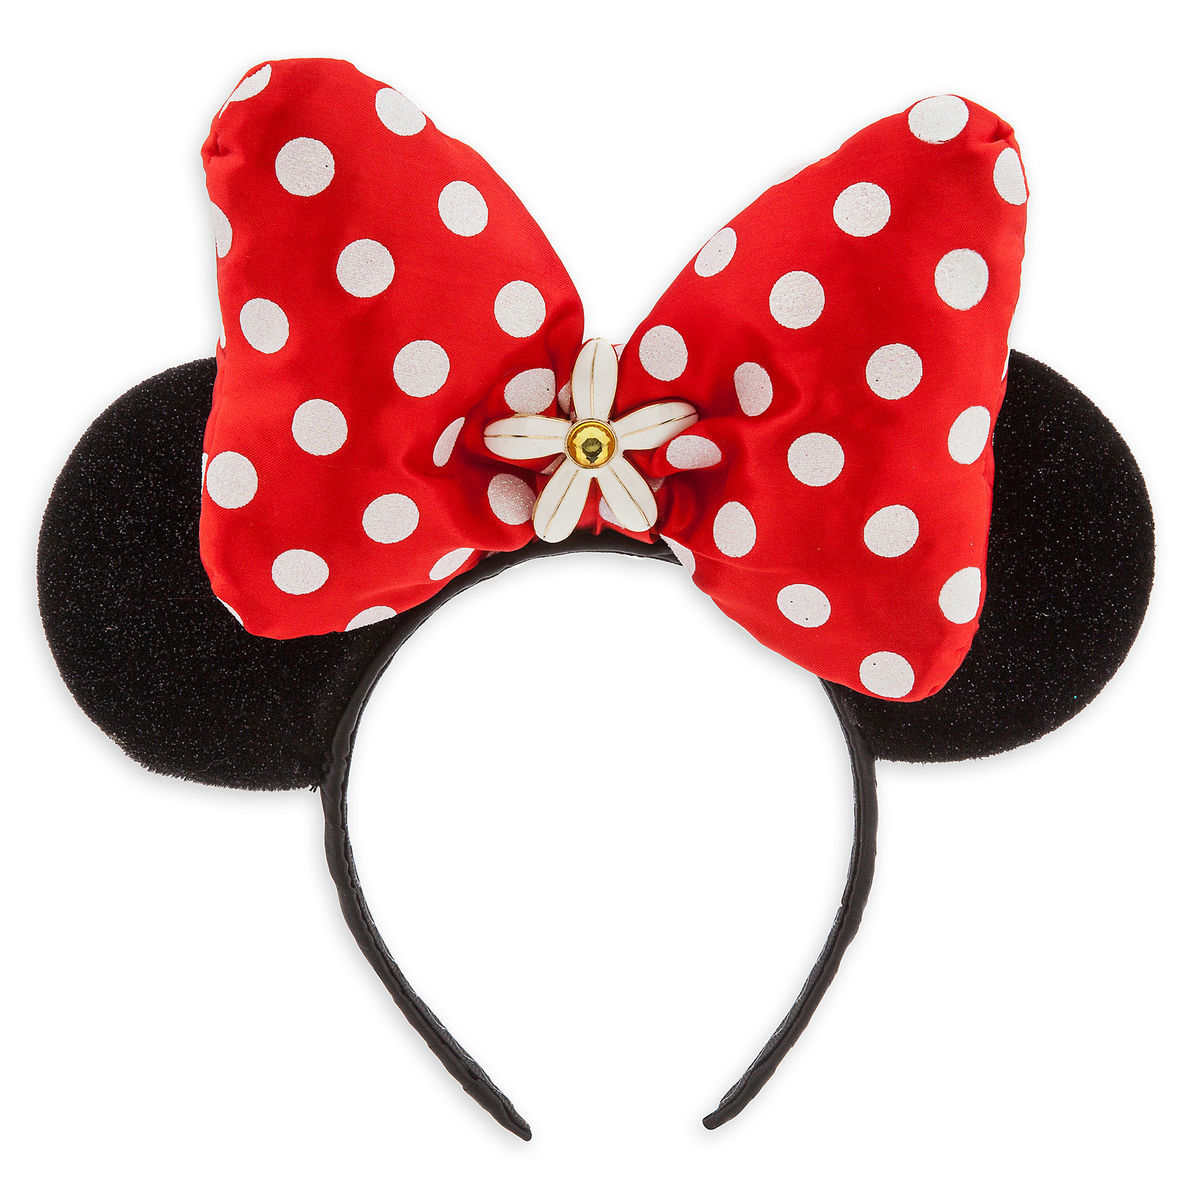 a92c8faf967 Product Image of Minnie Mouse Ear Headband - Red Bow   1